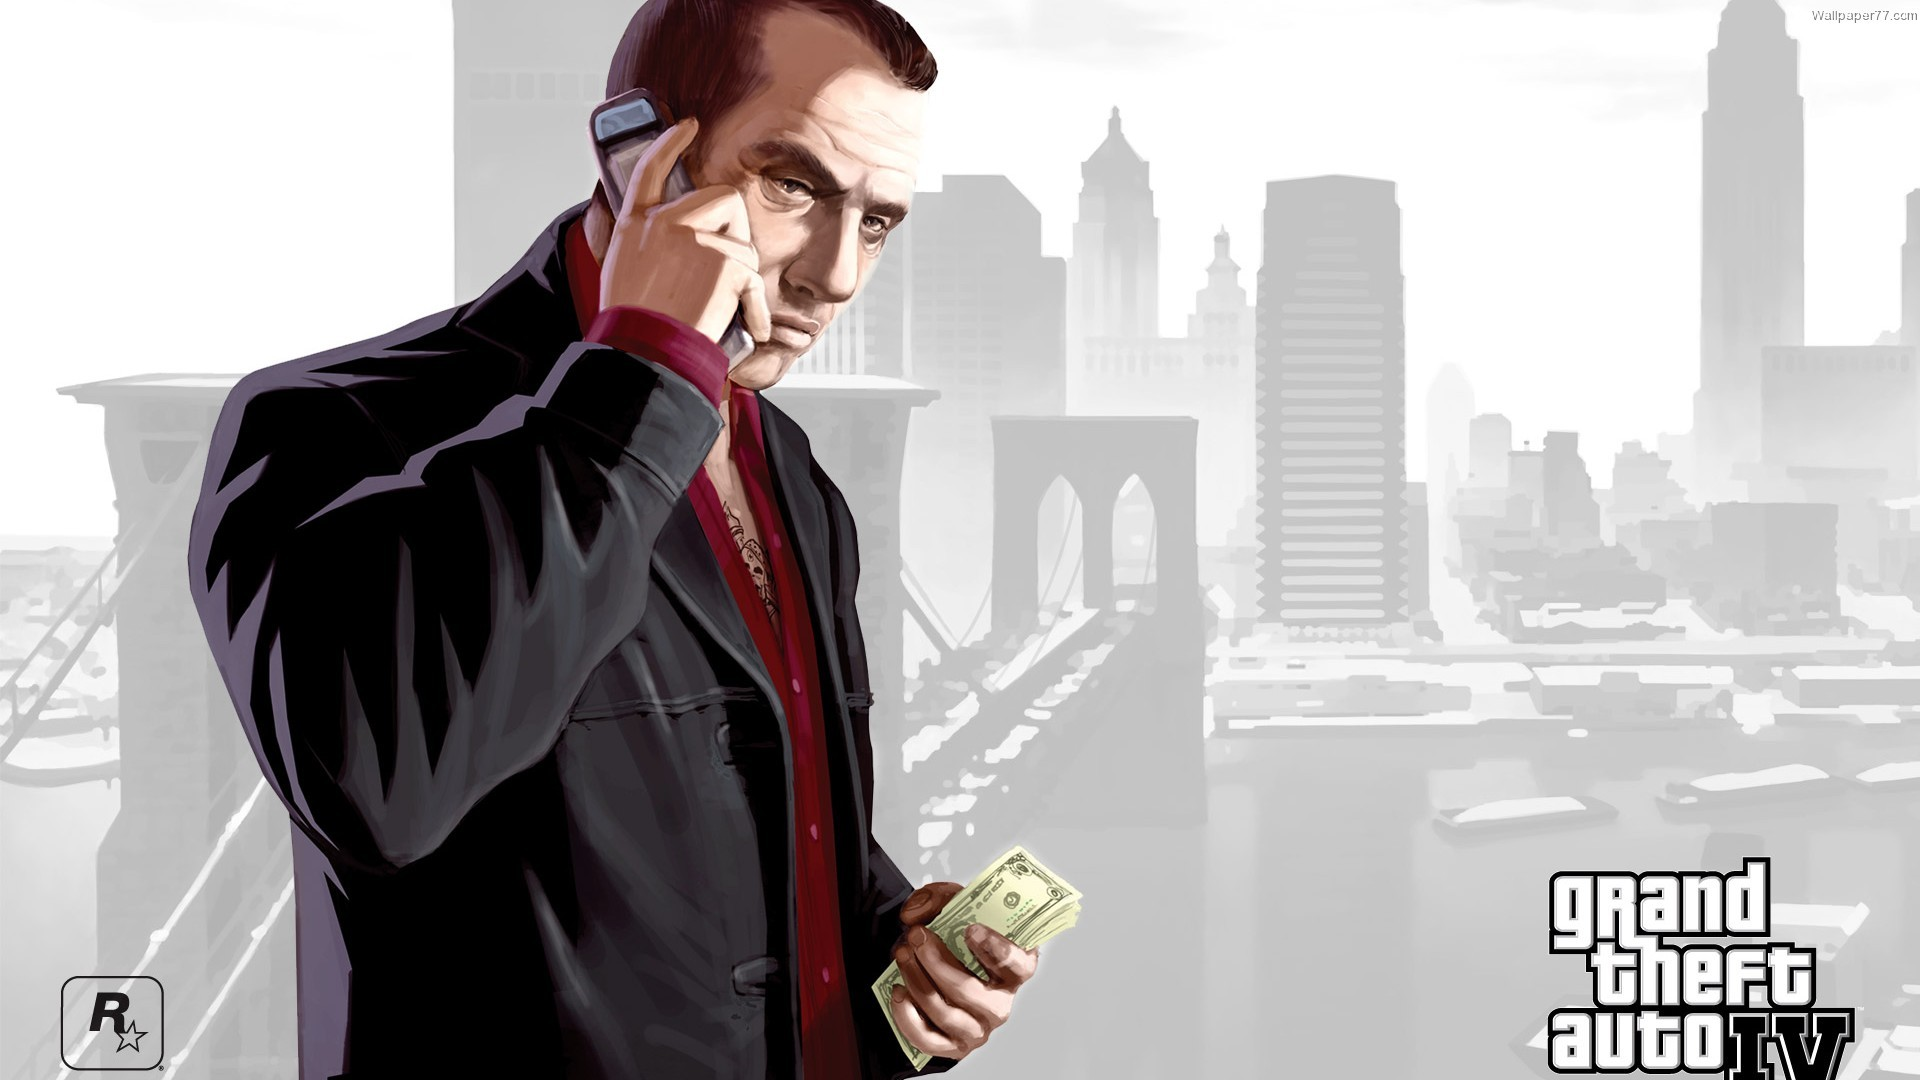 Res: 1920x1080, Gta 4 Wallpaper Hd